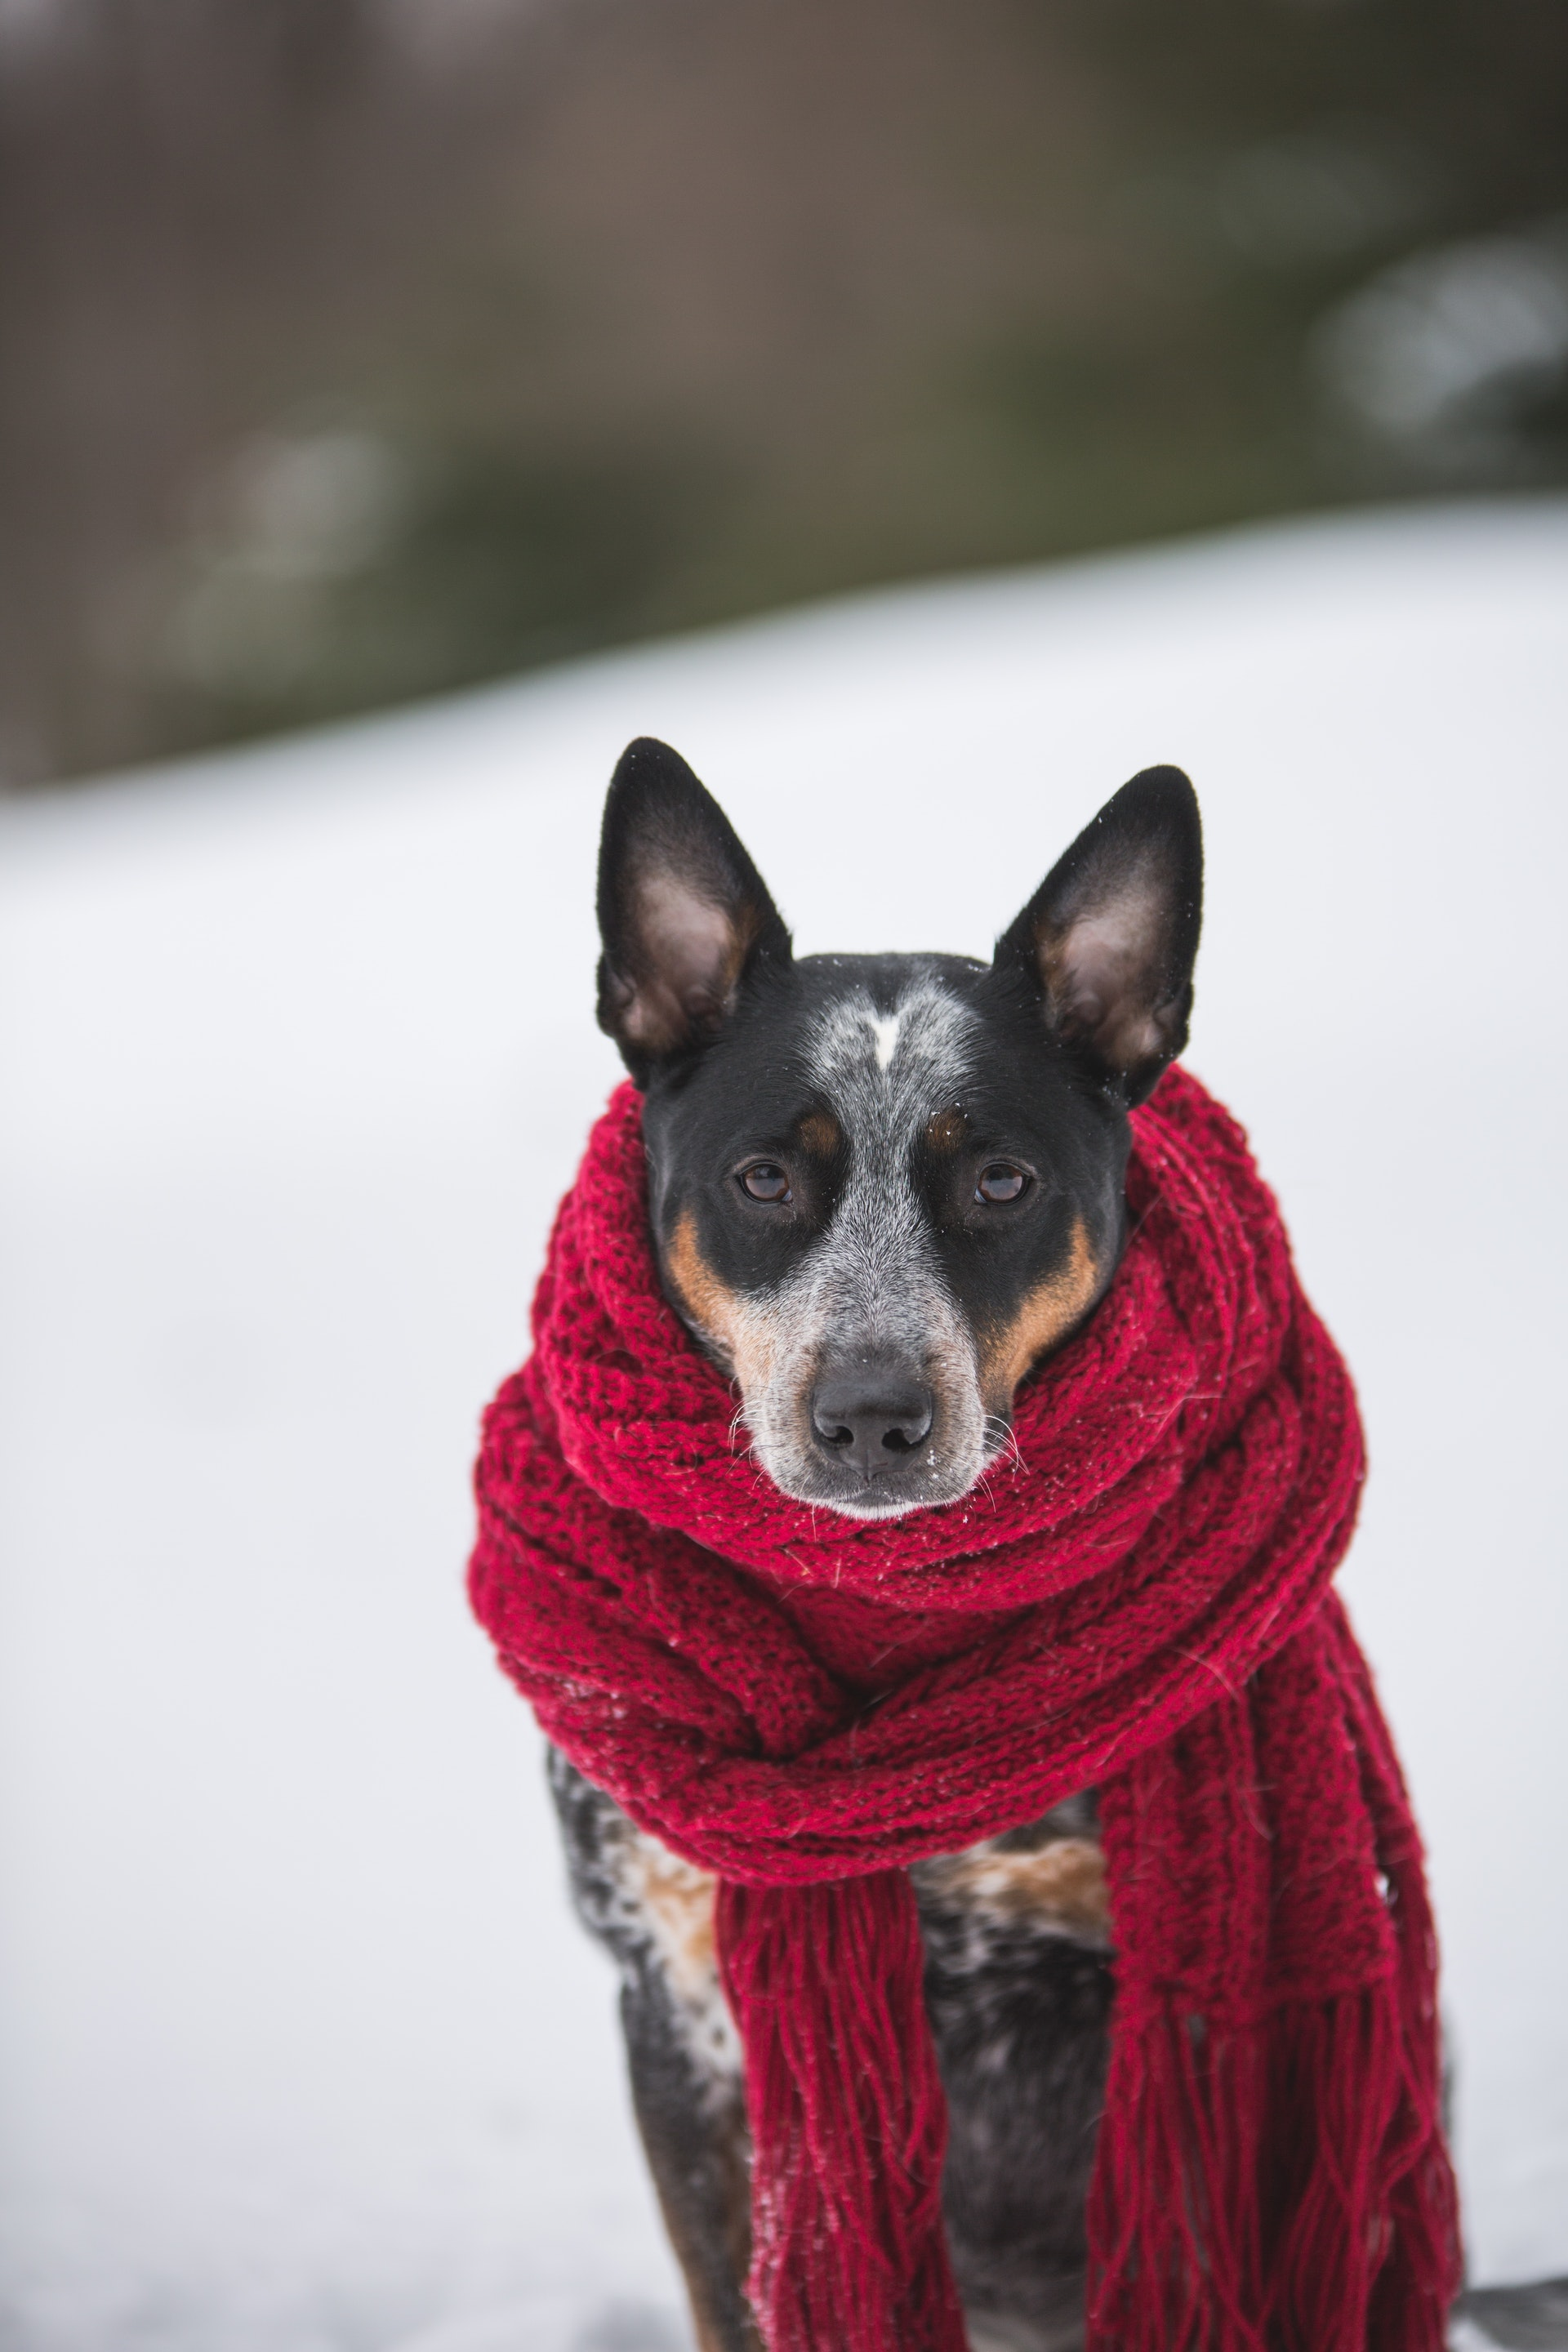 Bring Your Pets in From the Cold and Be sure Your Home is Pet-Proof